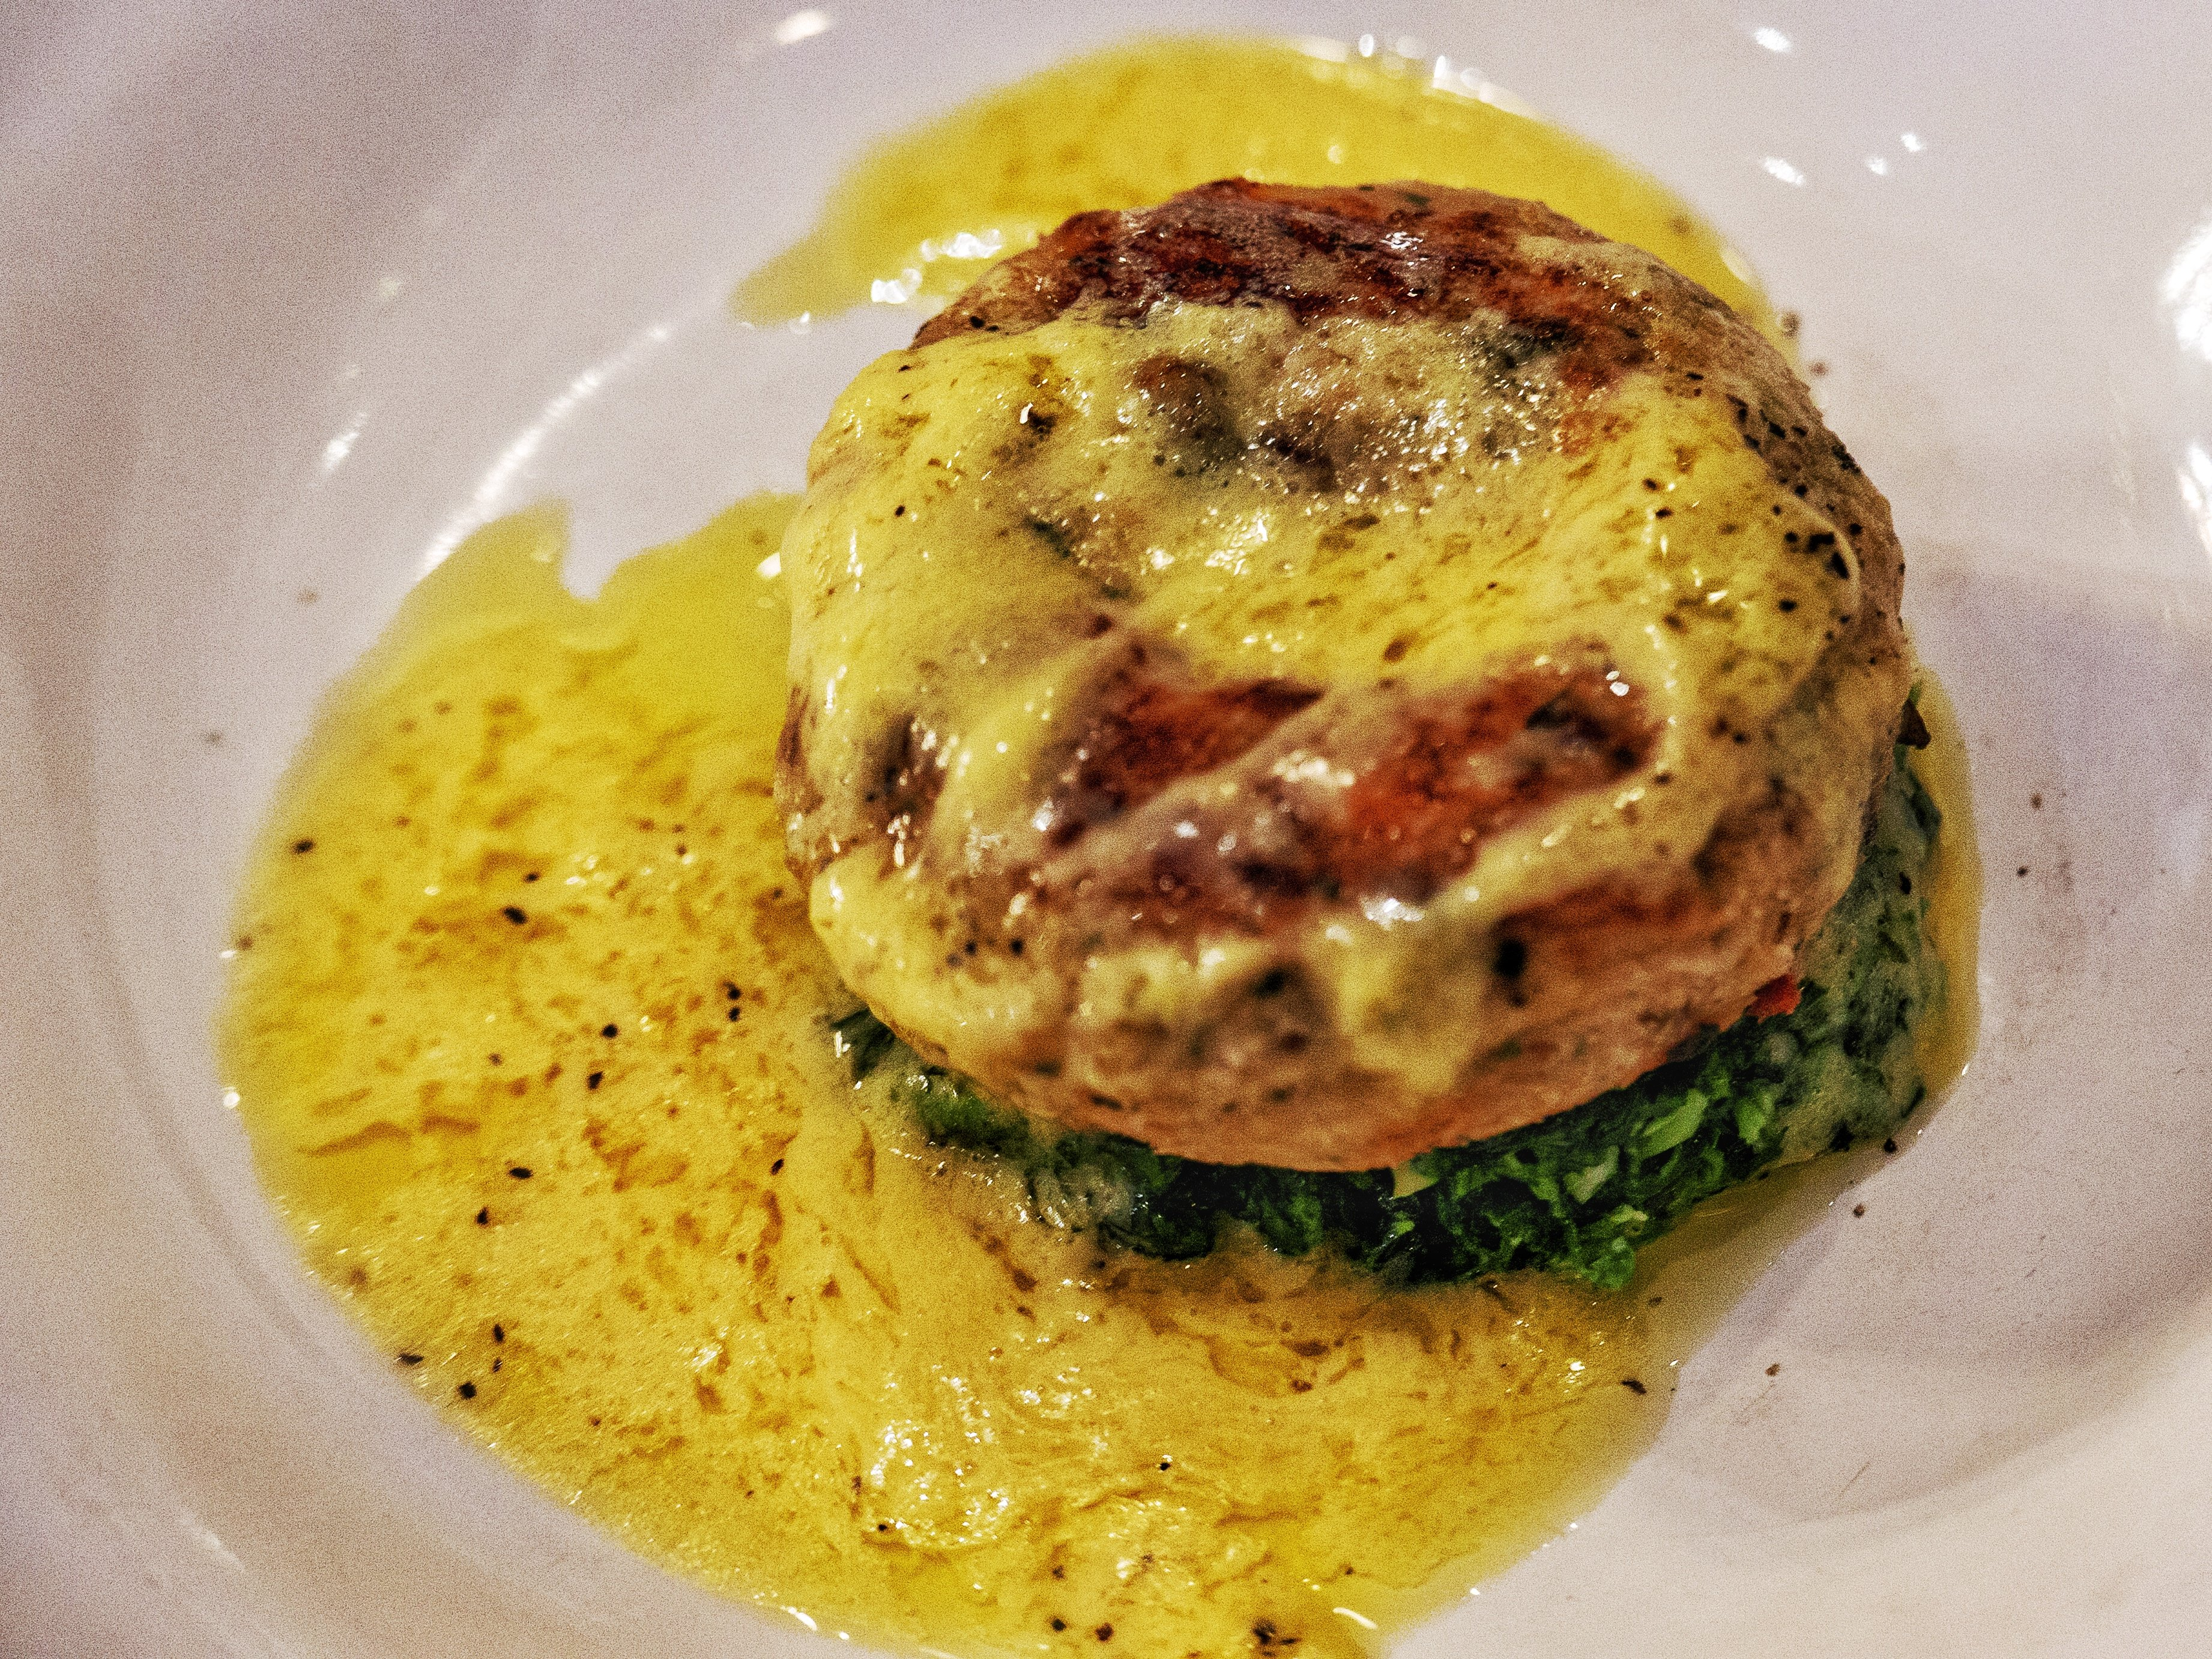 Starters at Bistrot Pierre: Panfried fishcake with wilted spinach and Hollandaise Sauce